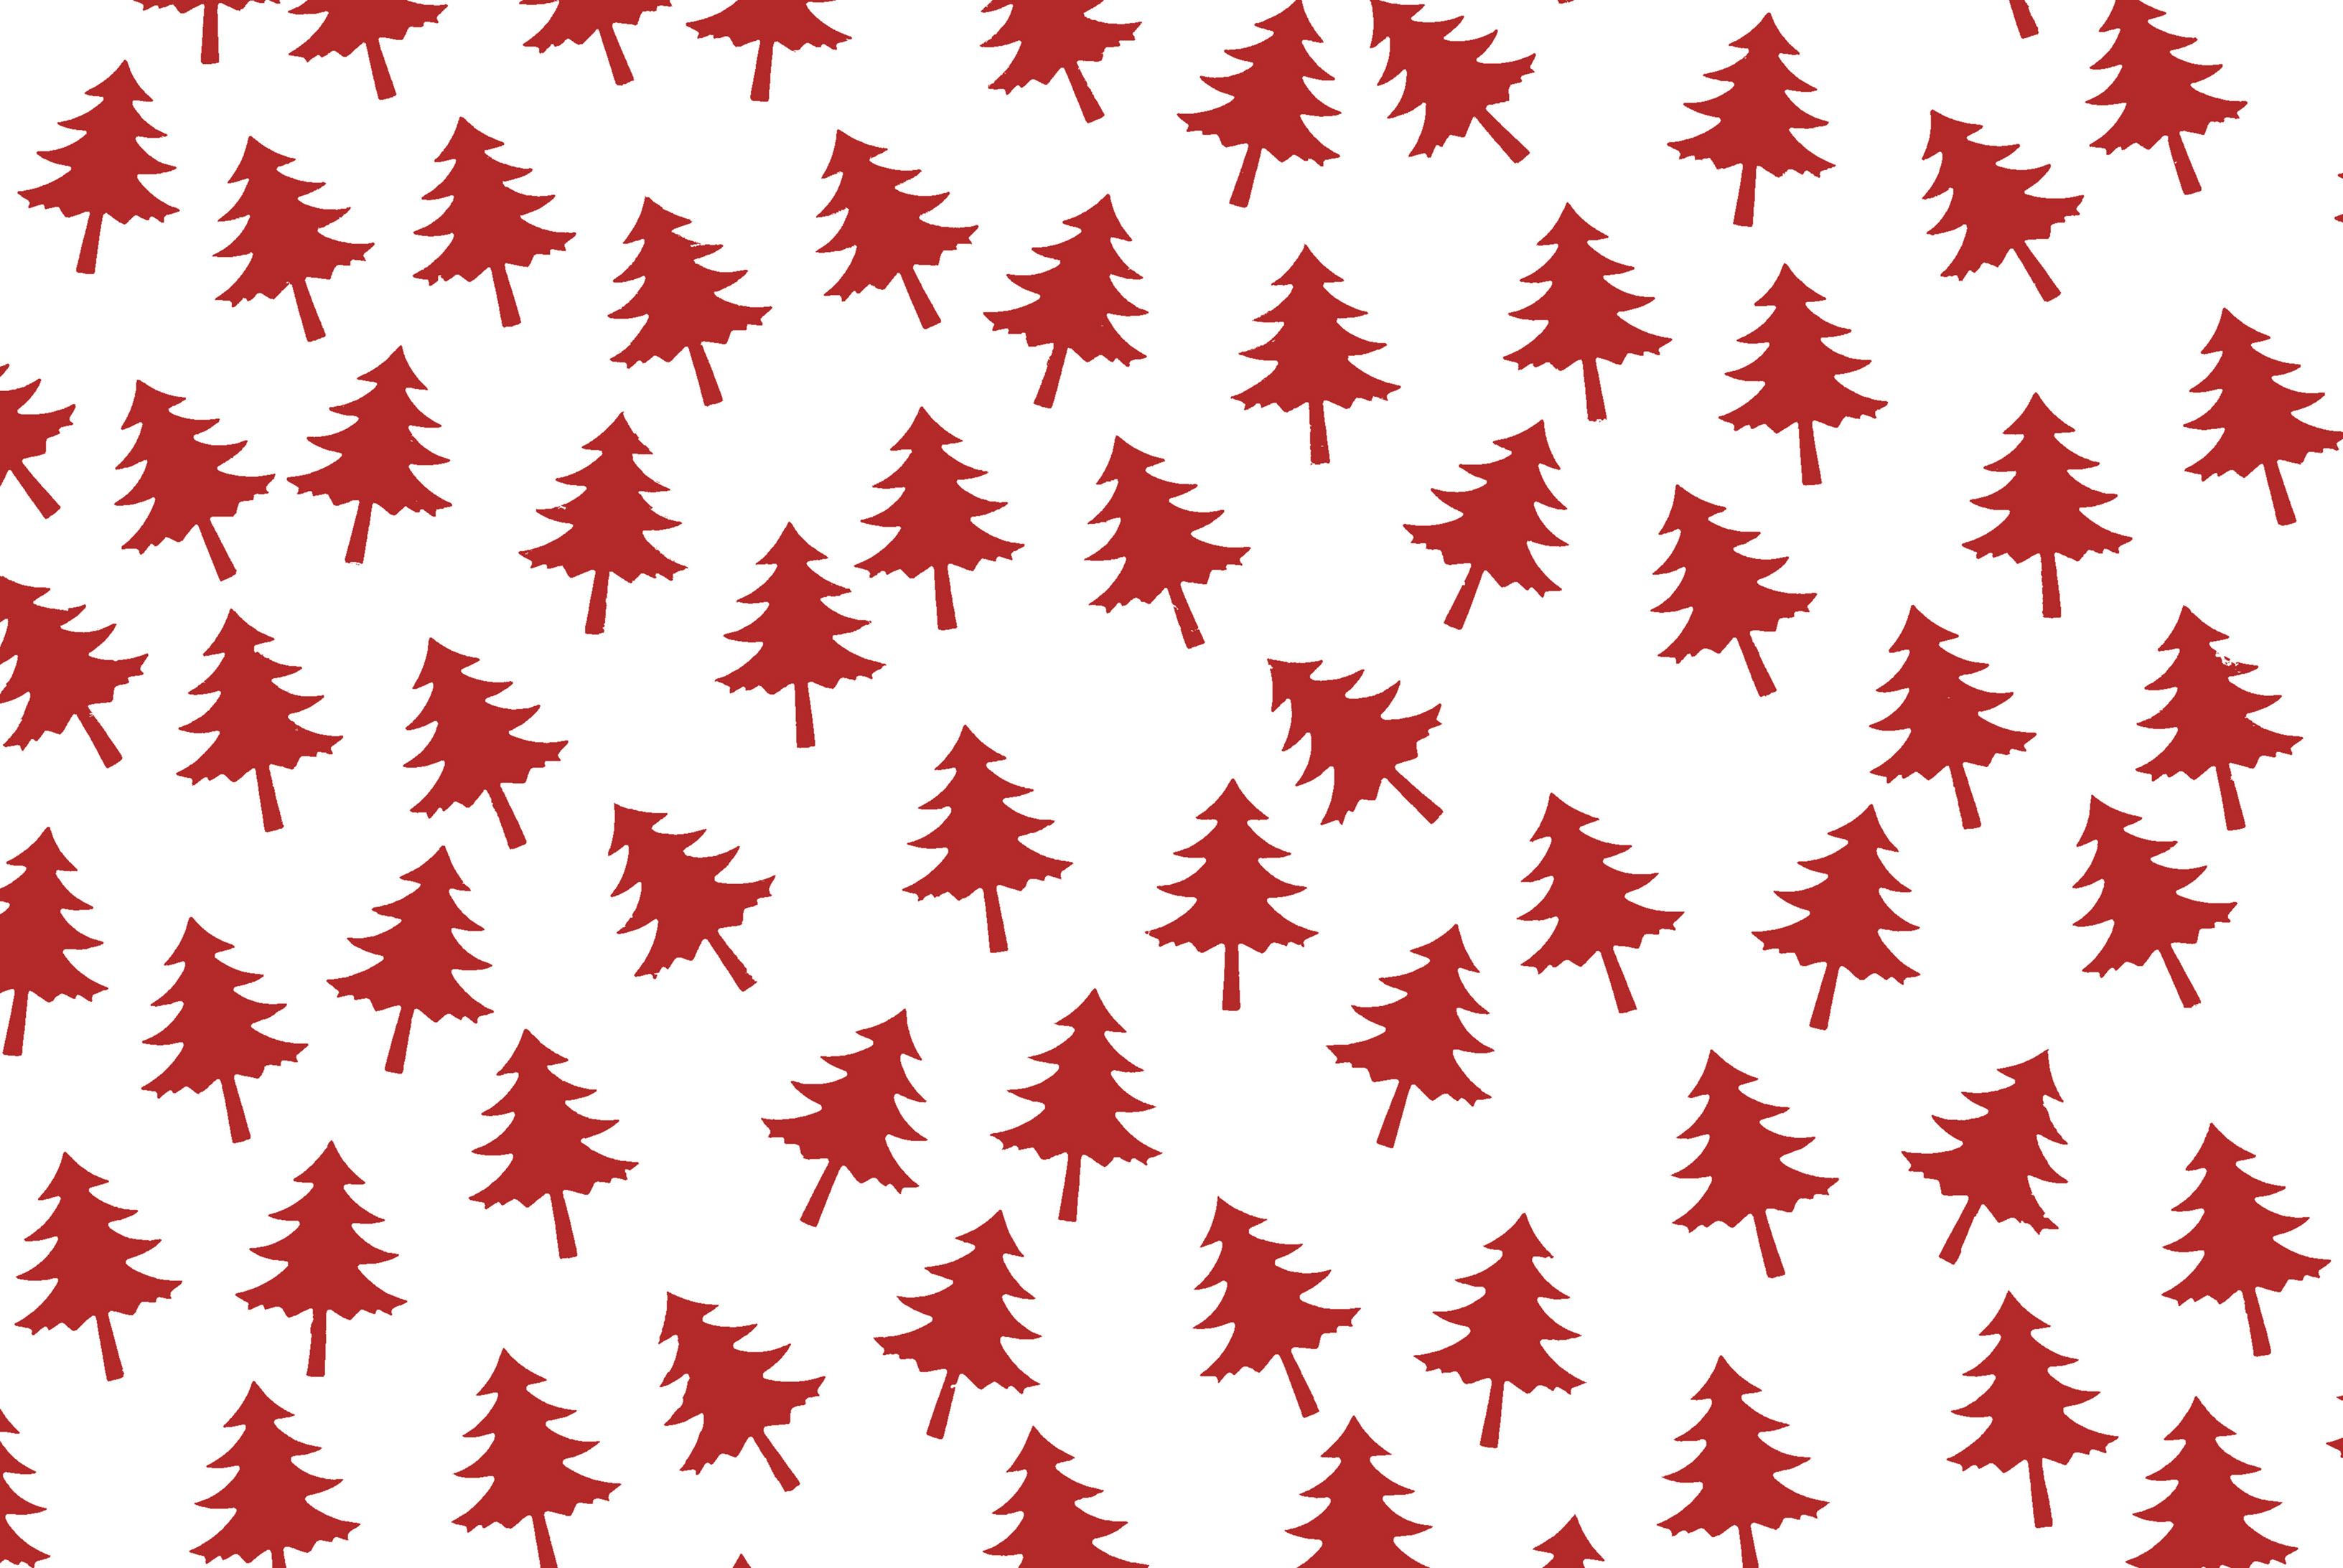 red christmas tree shapes